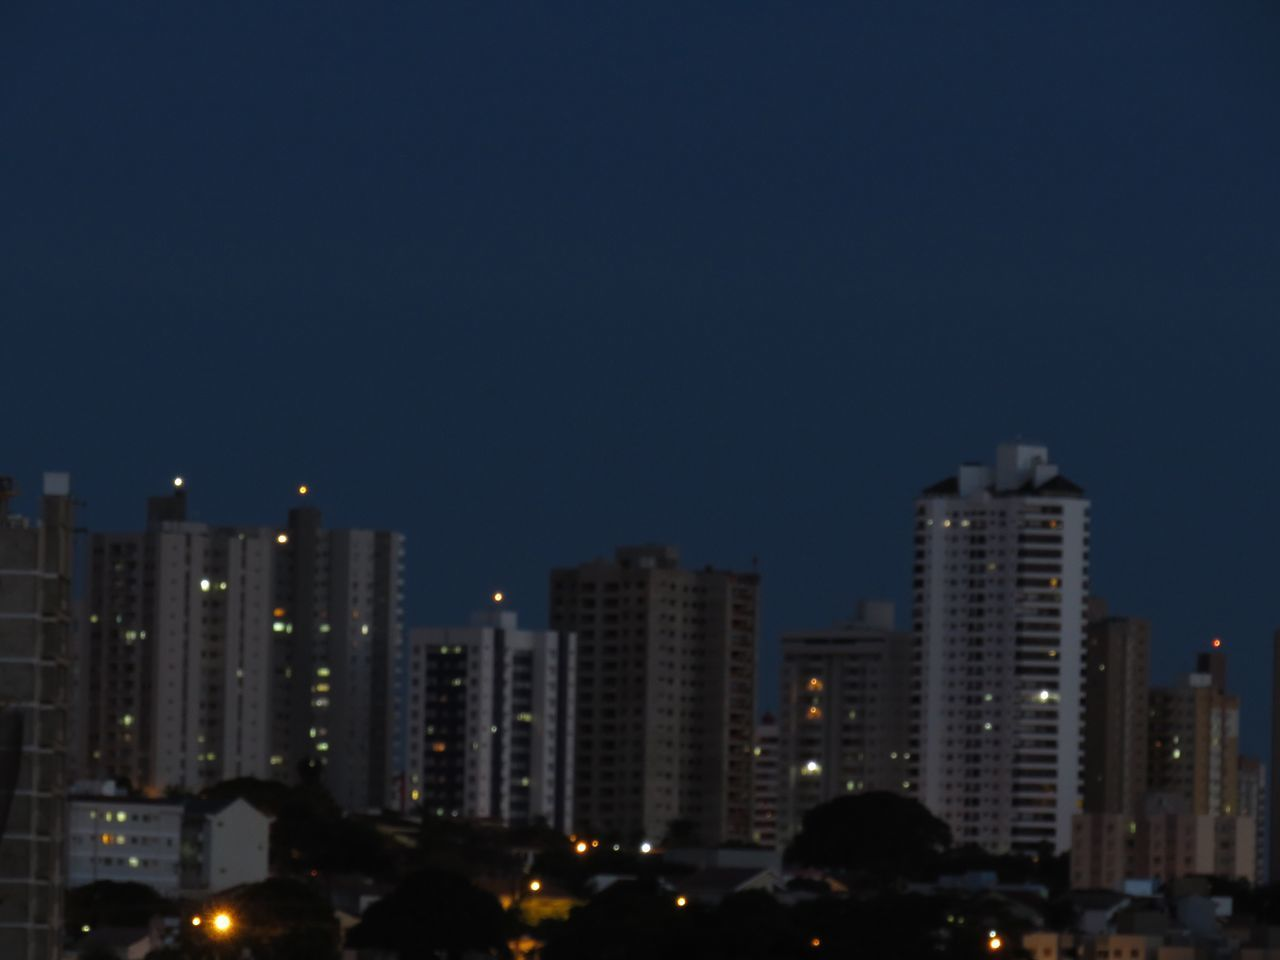 LOW ANGLE VIEW OF ILLUMINATED CITY AGAINST SKY